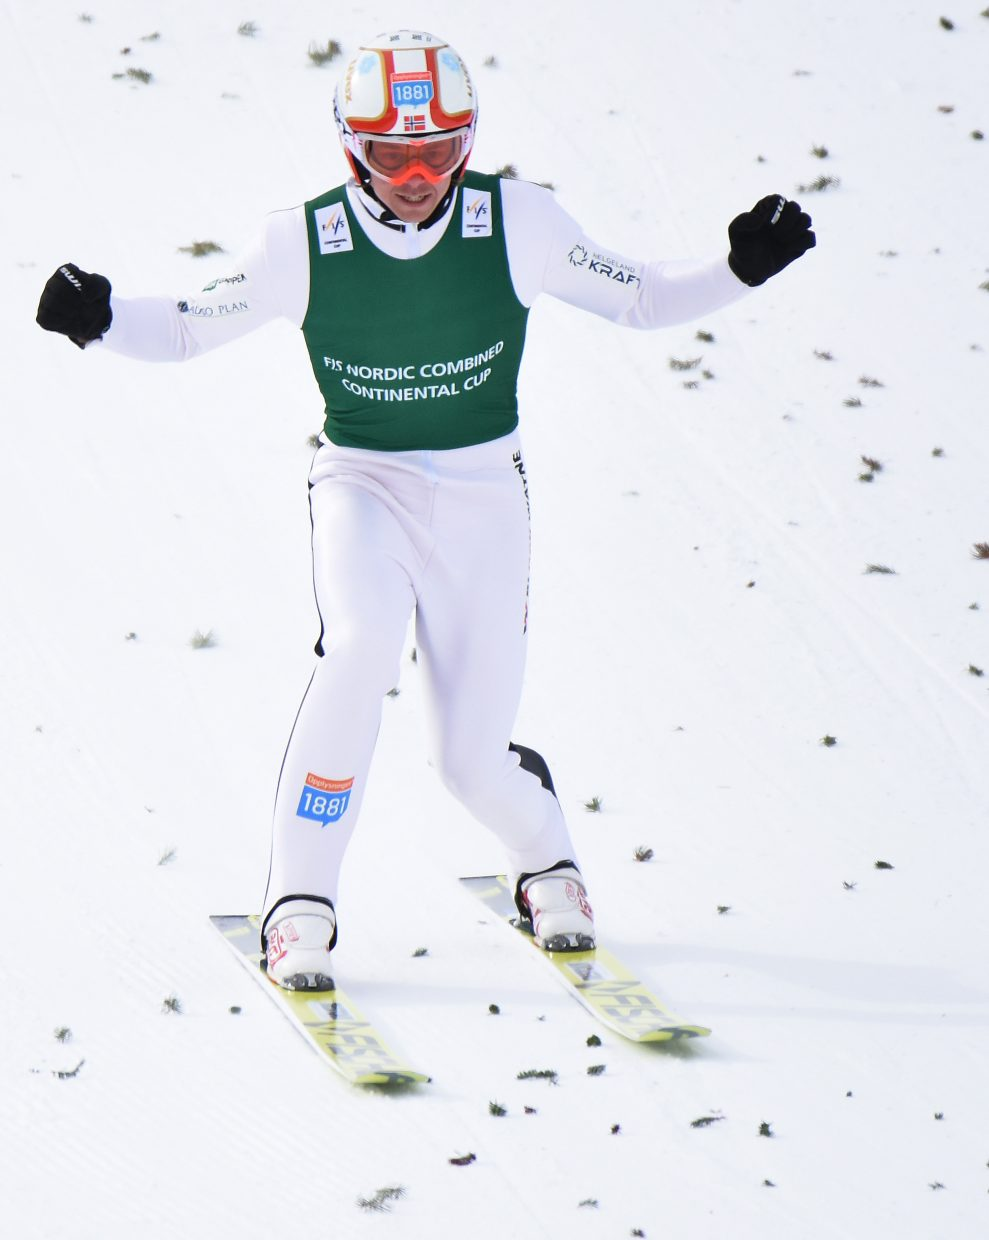 Mikko Kokslien pumps his fists after a strong jump on Saturday during the Continental Cup event in Steamboat Springs.